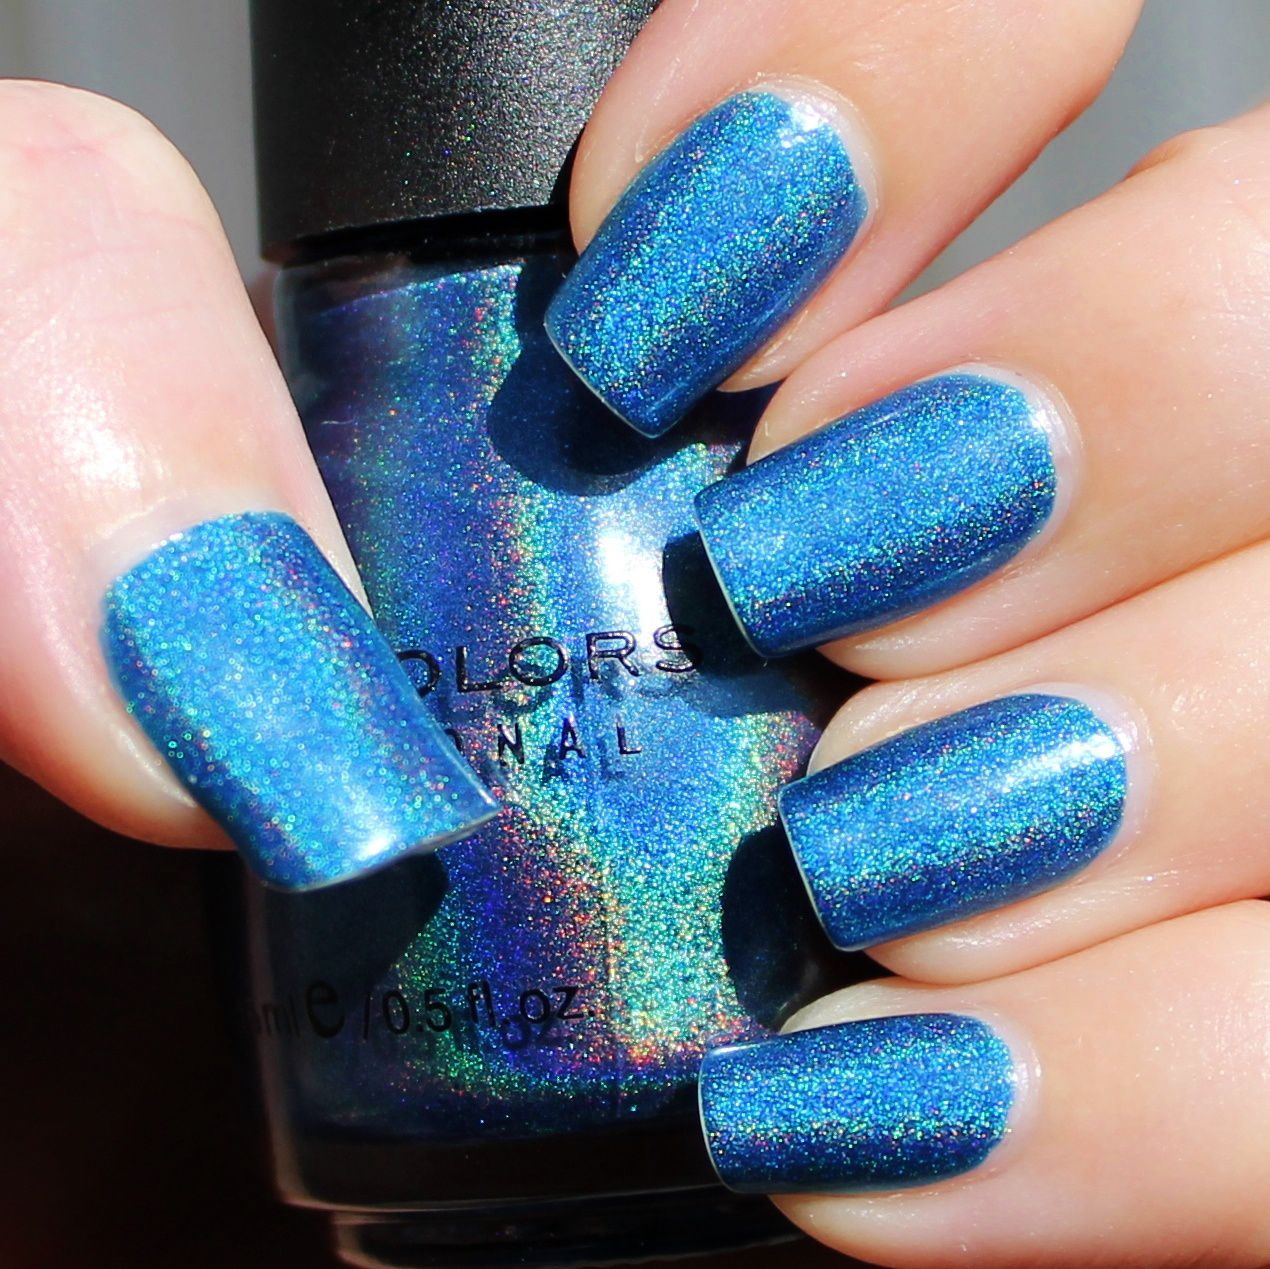 Nfu Oh Aqua Base / Sinful Colord Franken Polish Ciao Bella Holographic / OutTheDoor Top Coat